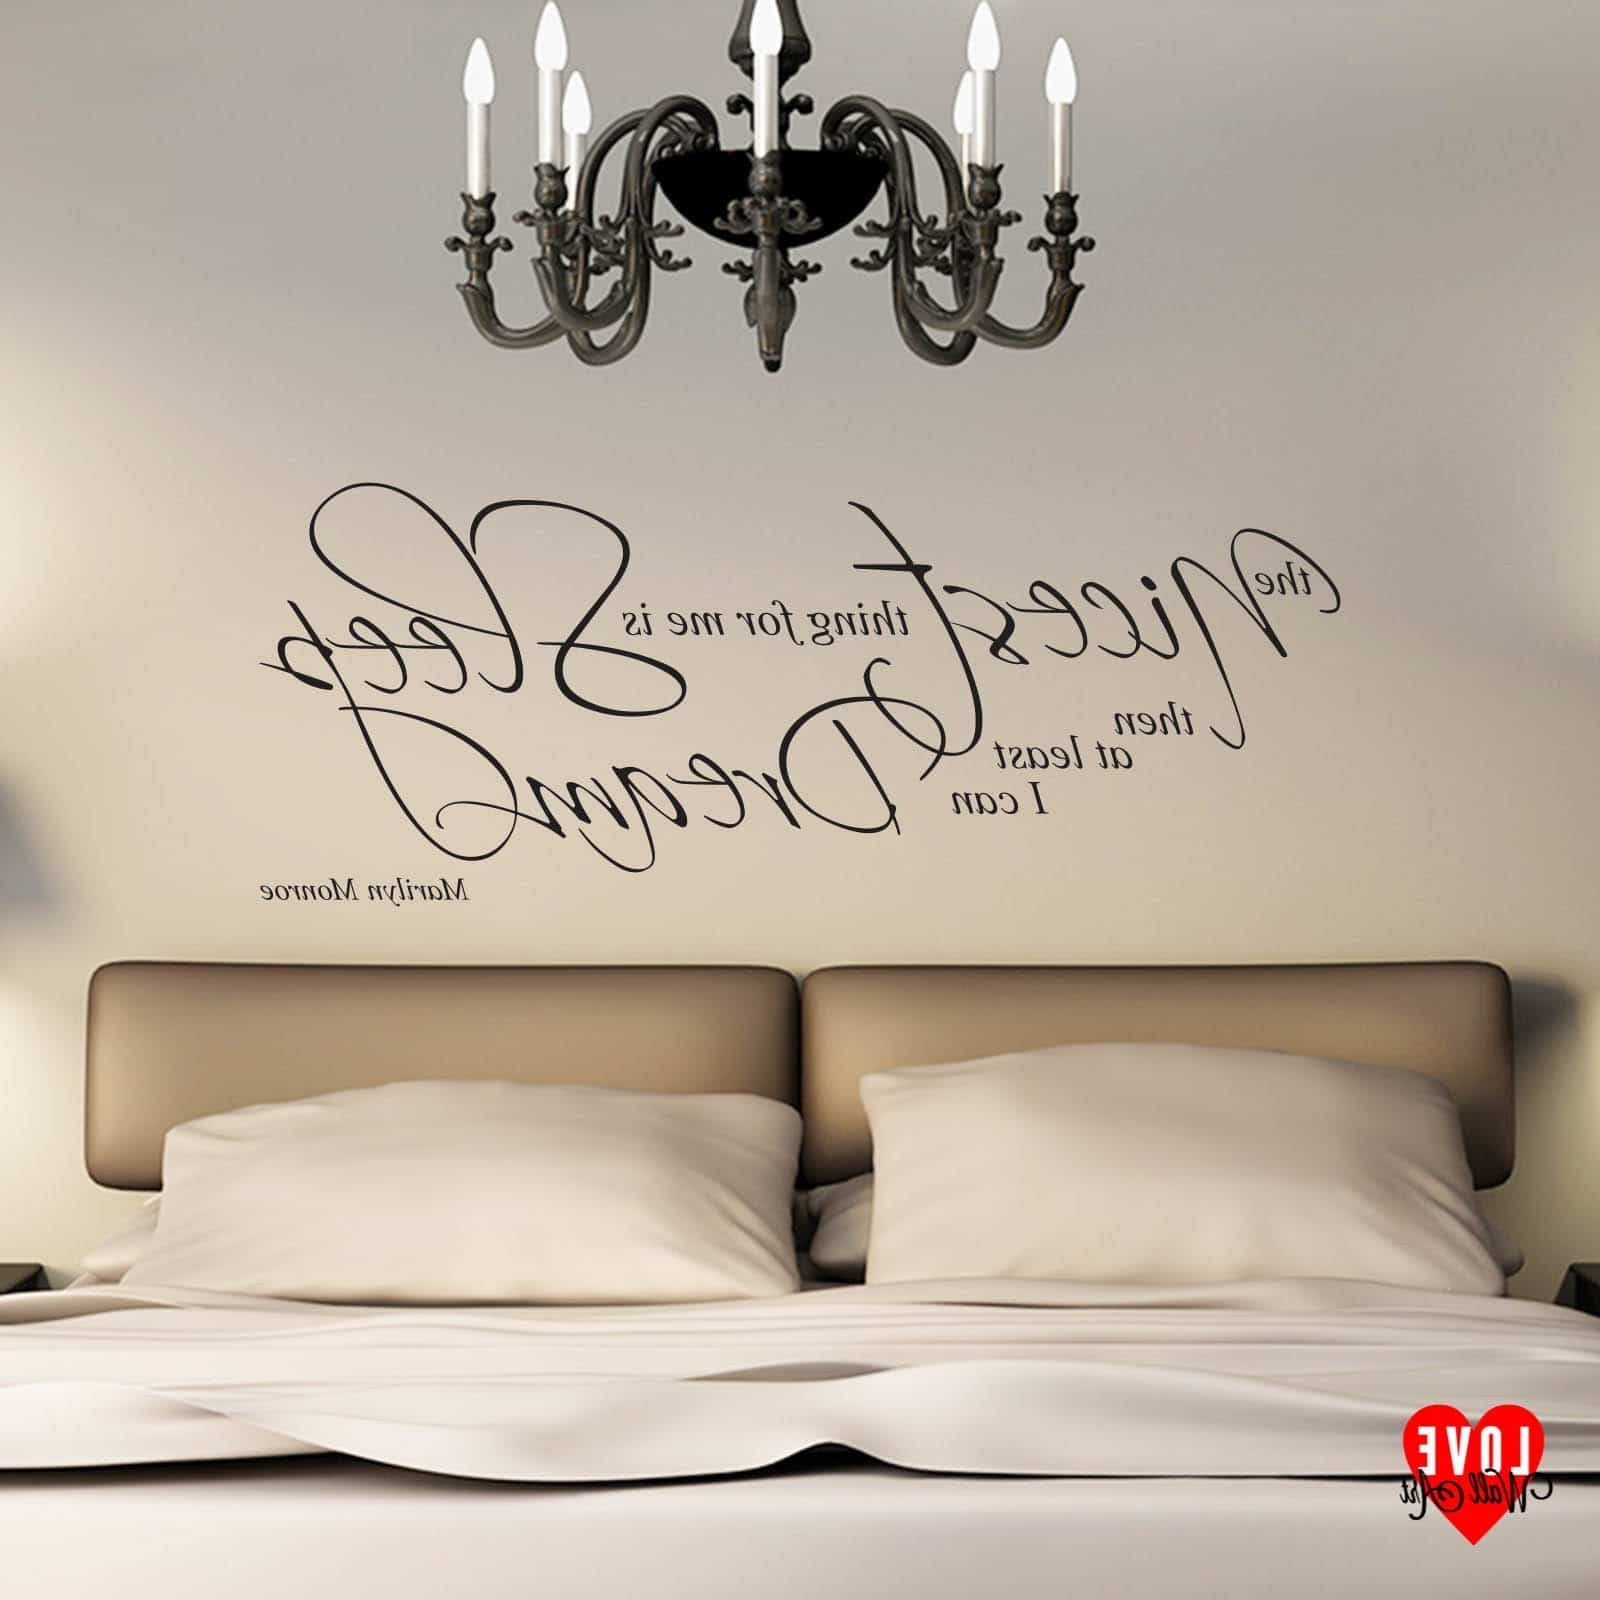 Well Known Marilyn Monroe Wall Art With Marilyn Monroe Quote The Nicest Thing For Me Is Sleep Wall Art (View 15 of 15)